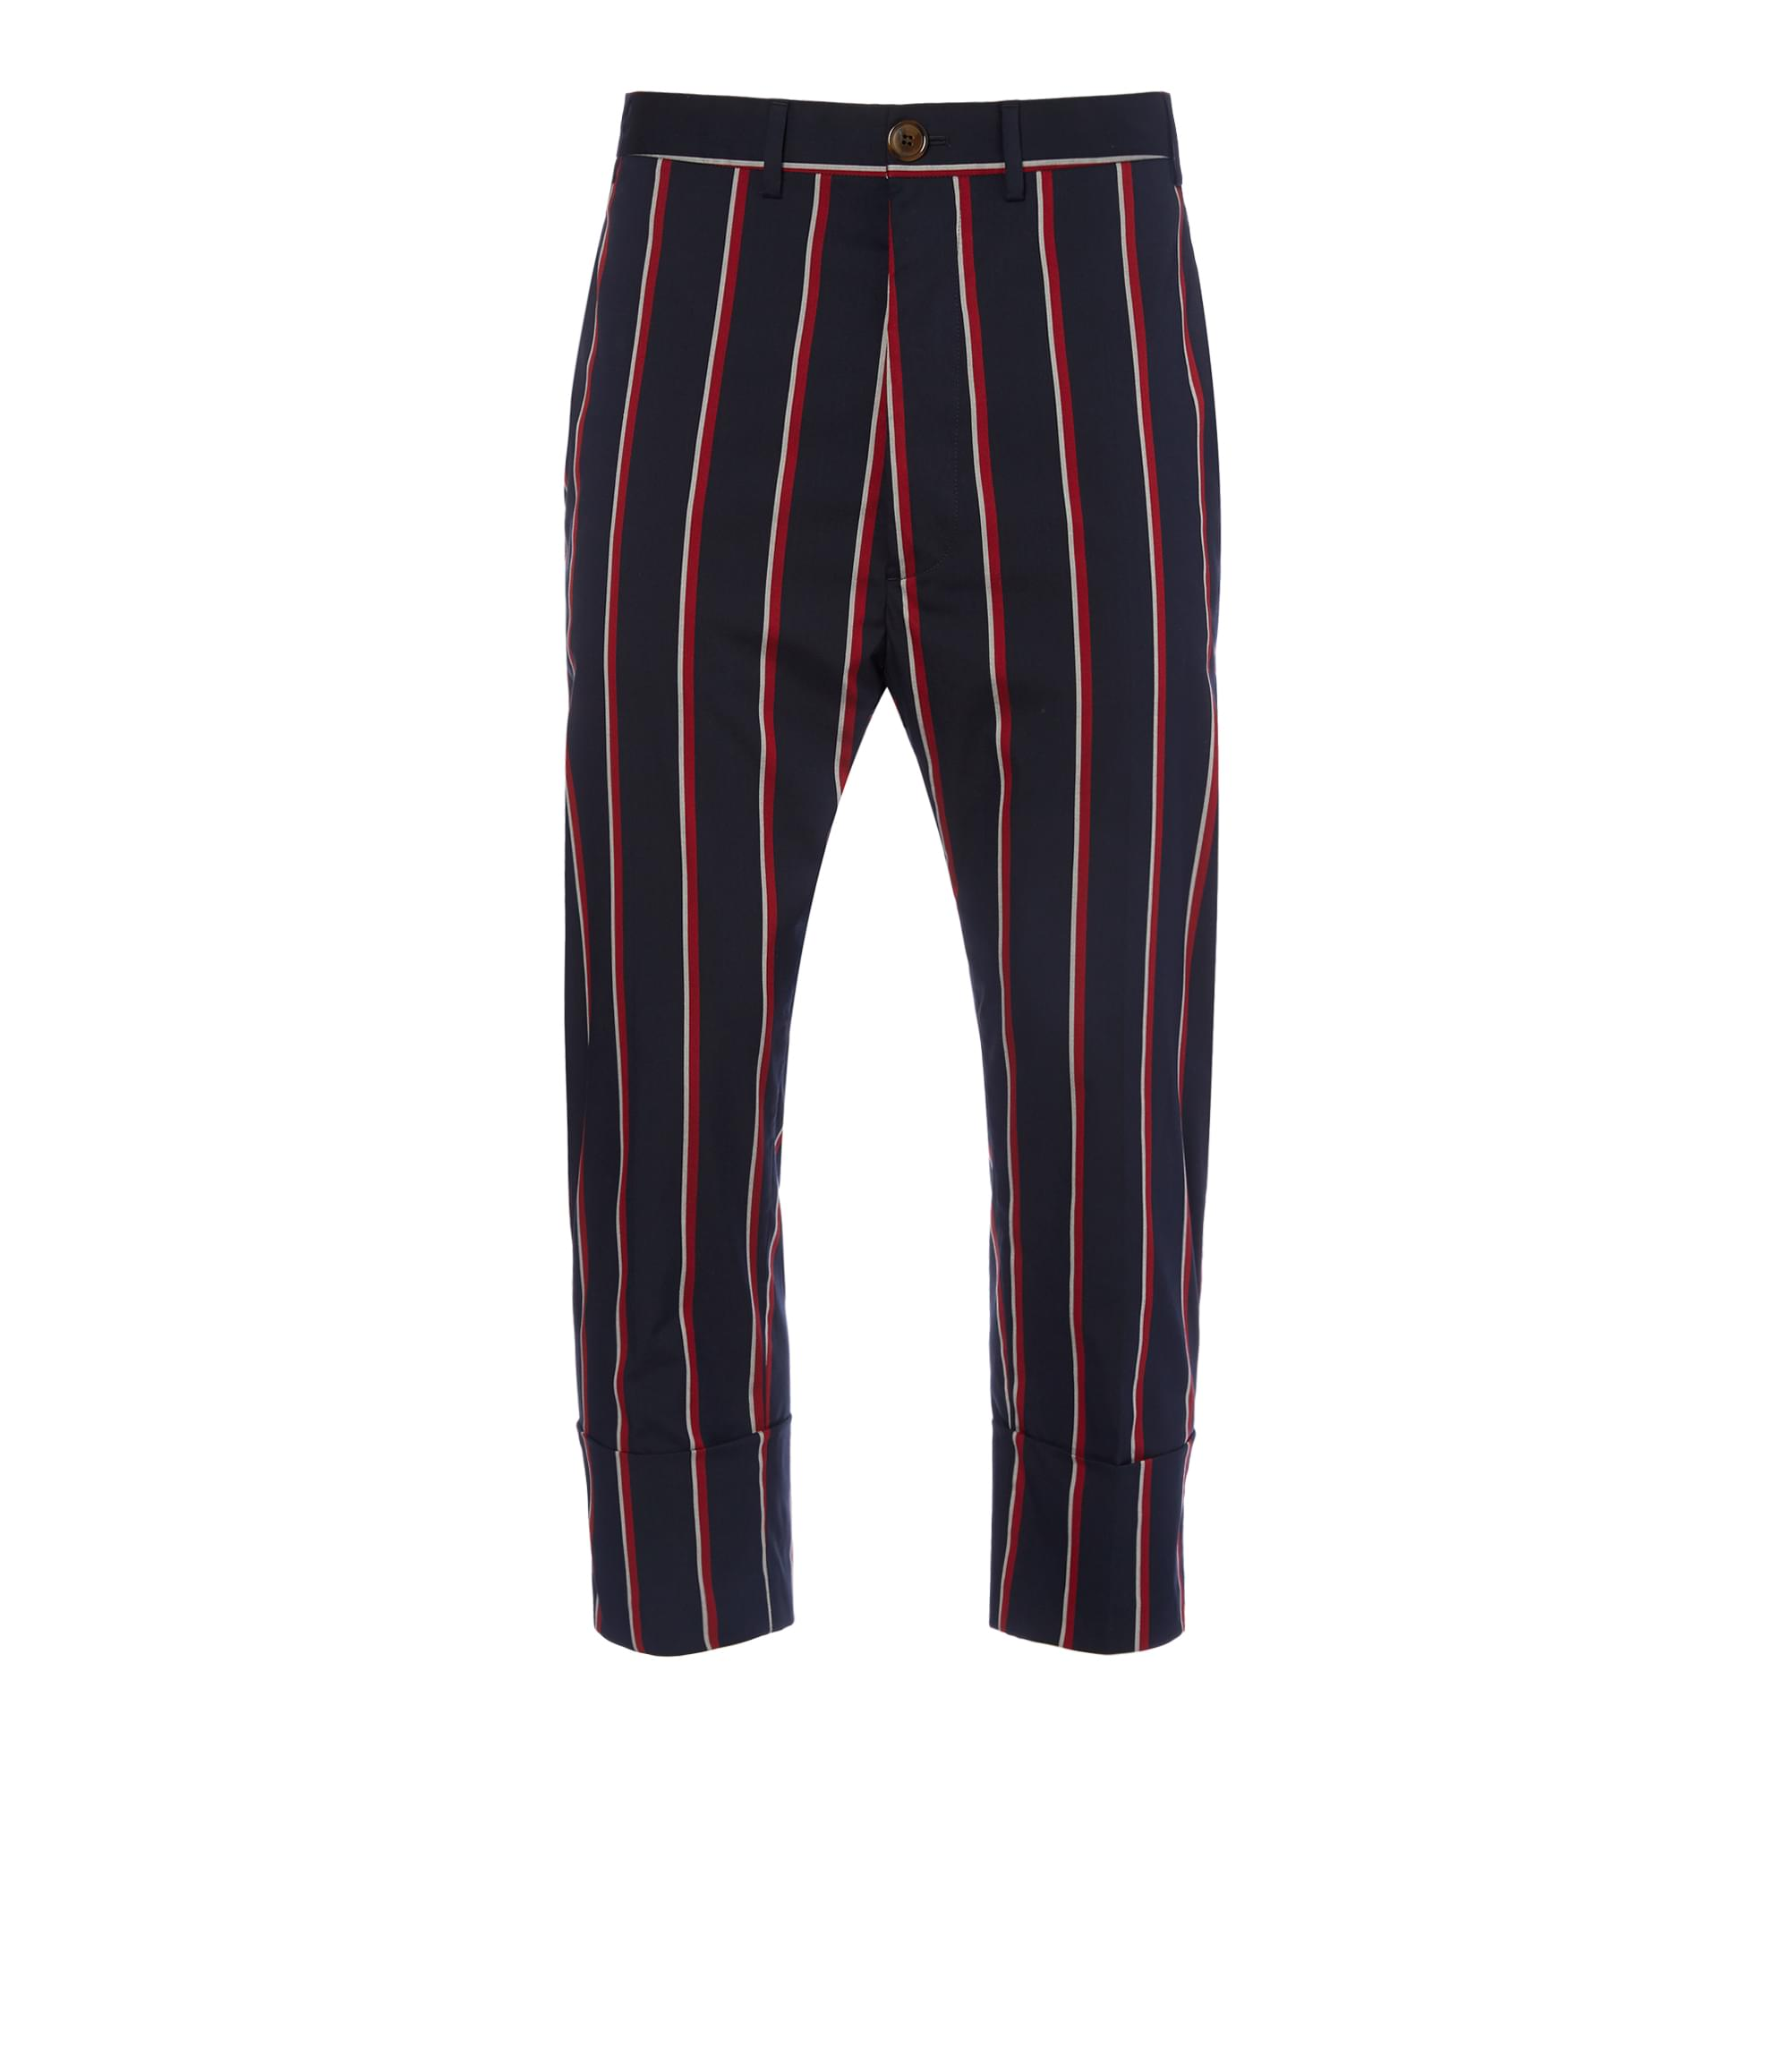 Vivienne Westwood Navy Stripe Cropped James Bond Trousers